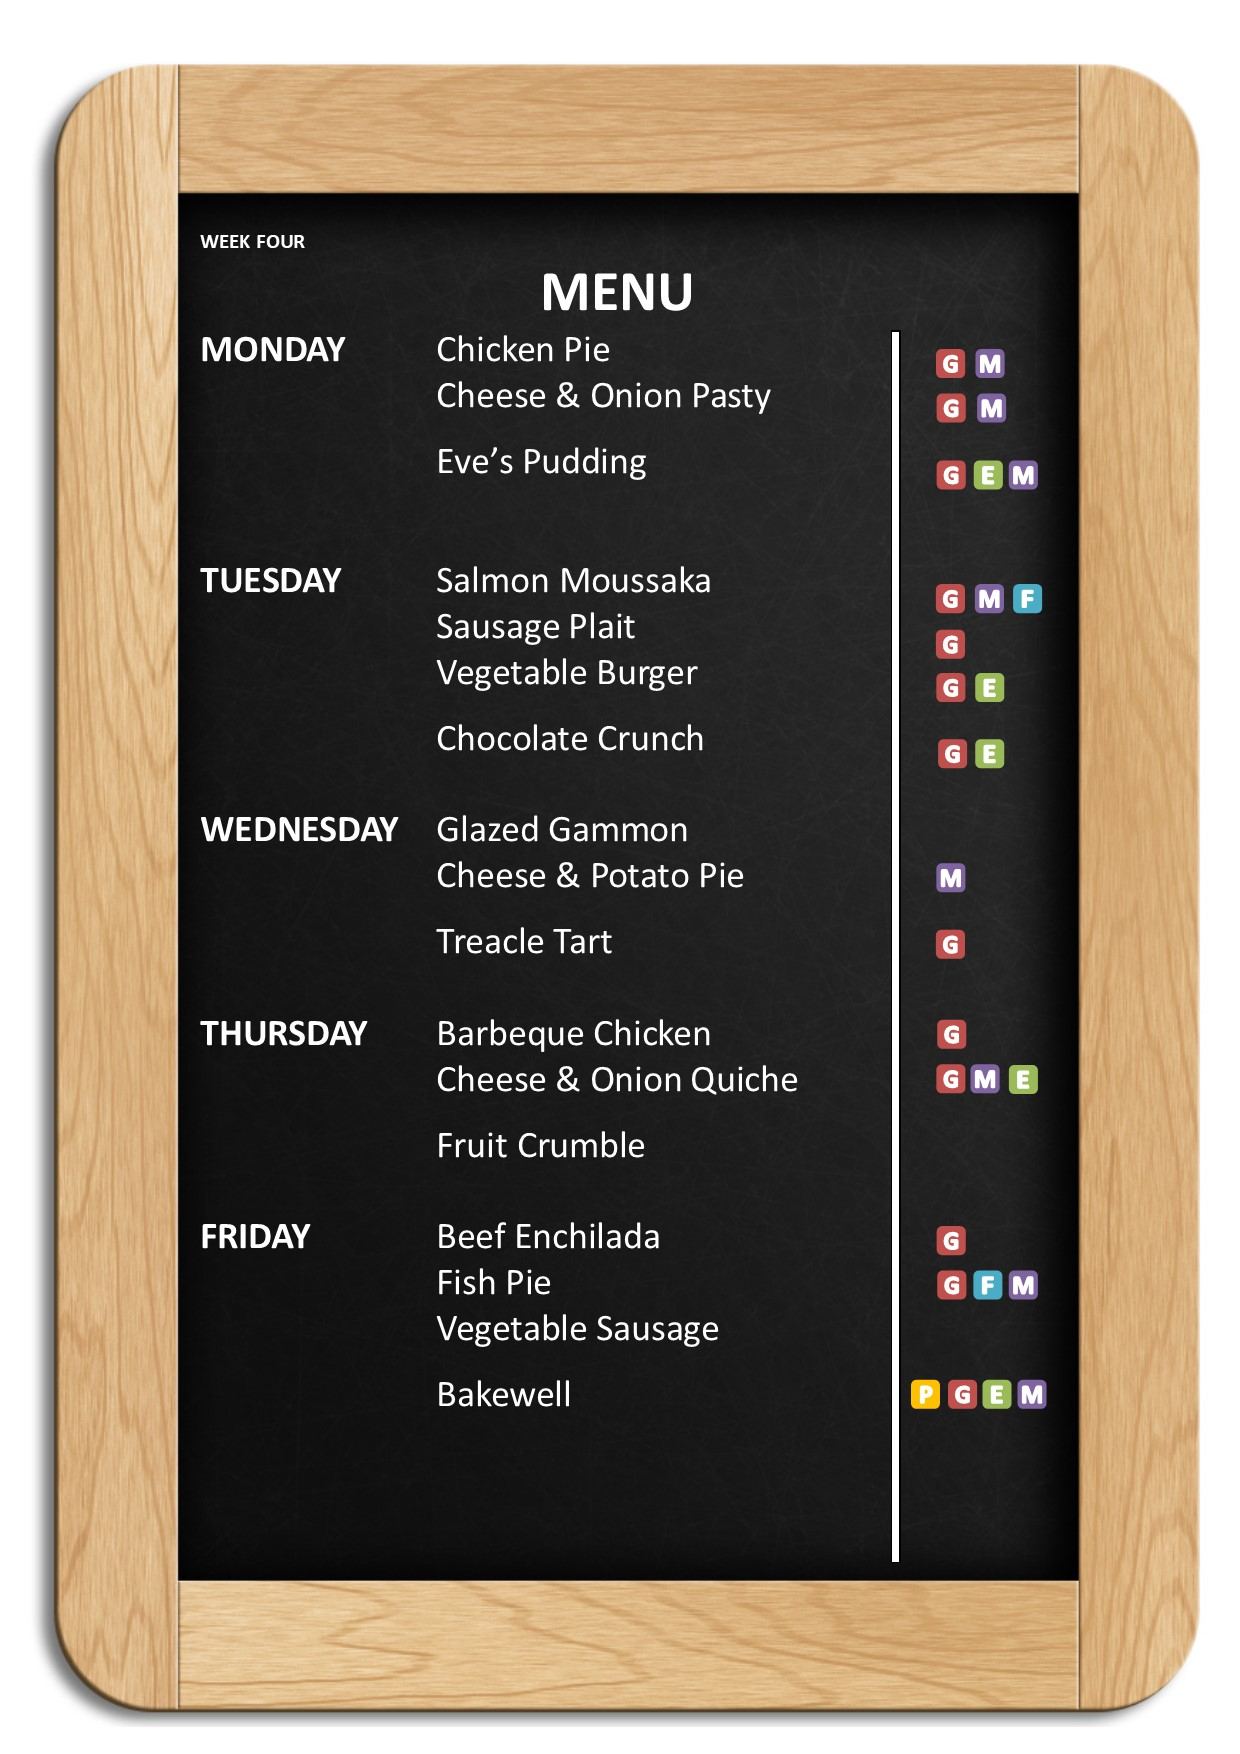 Autumn Winter Menus 2018 – Week 4